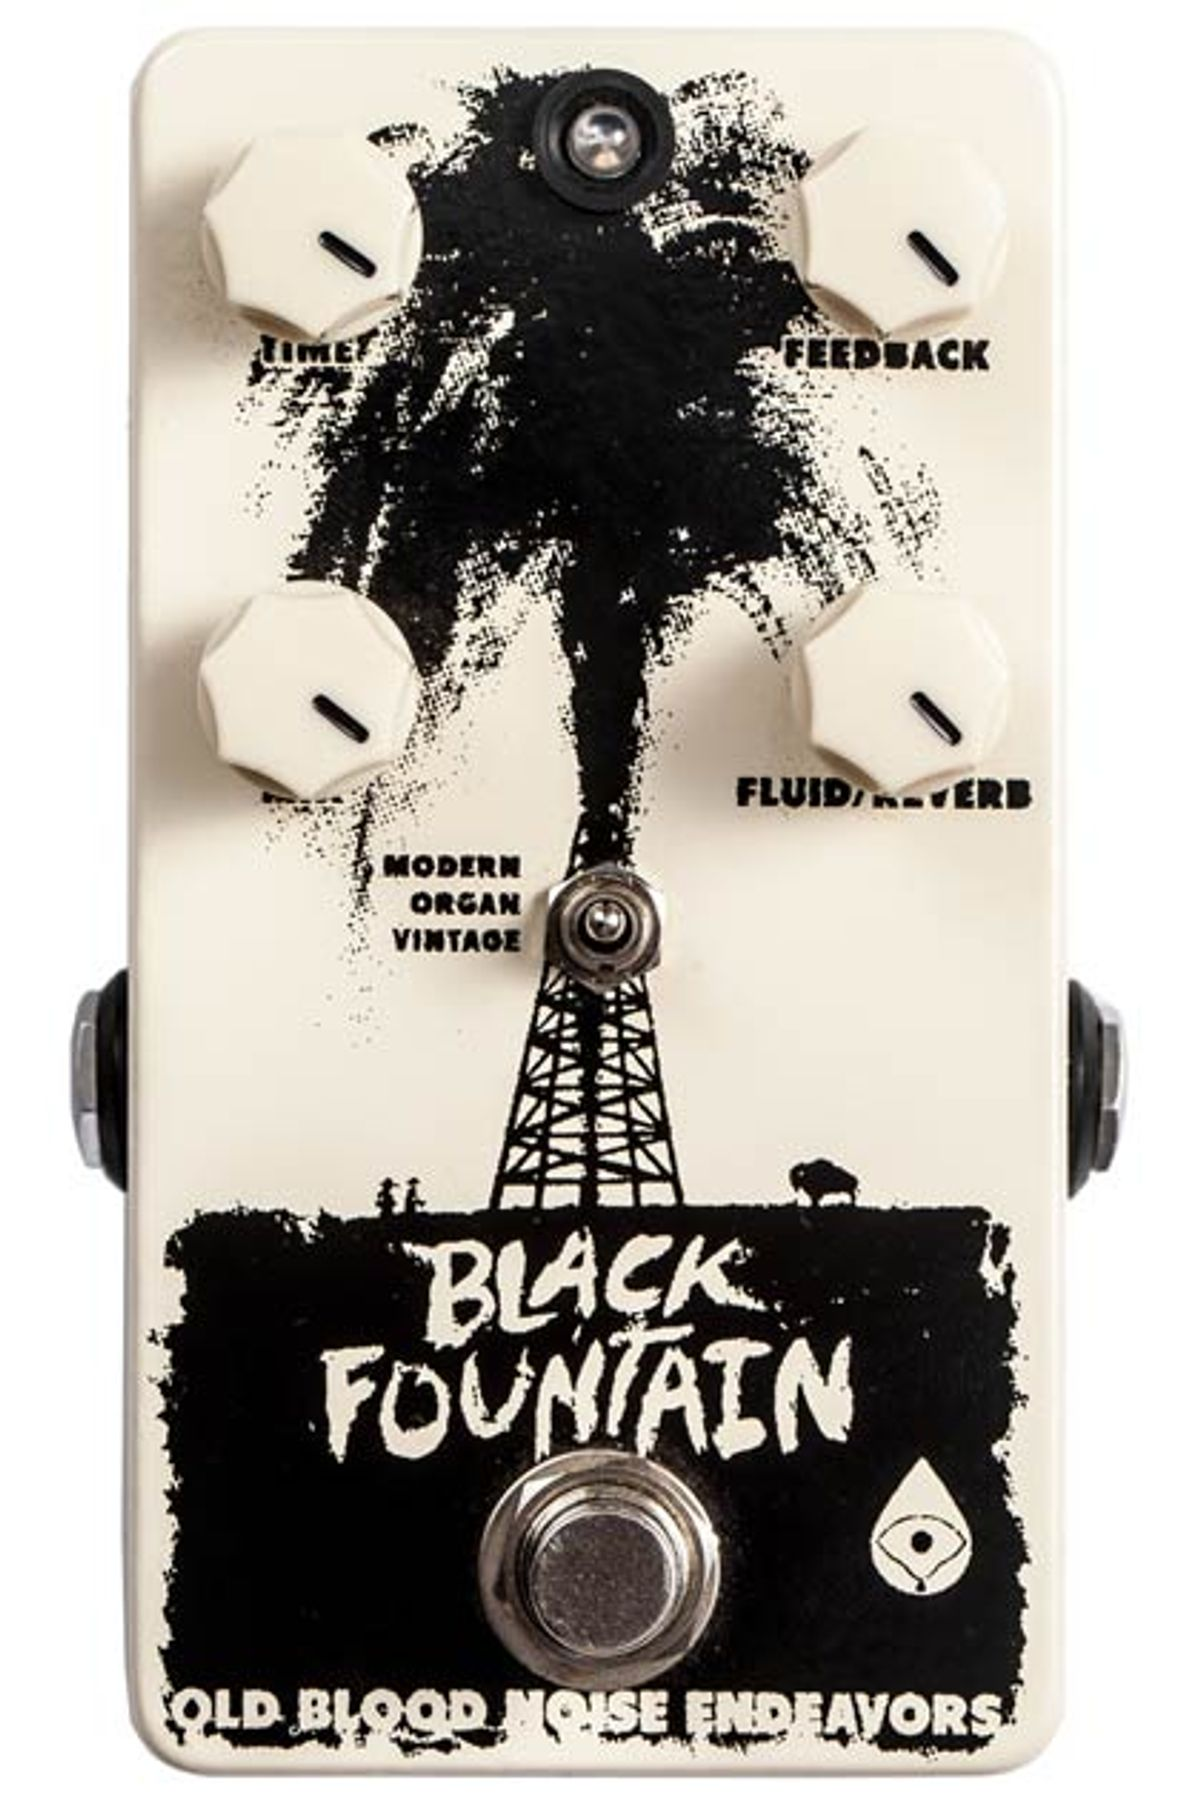 Old Blood Noise Endeavors Releases Black Fountain Delay